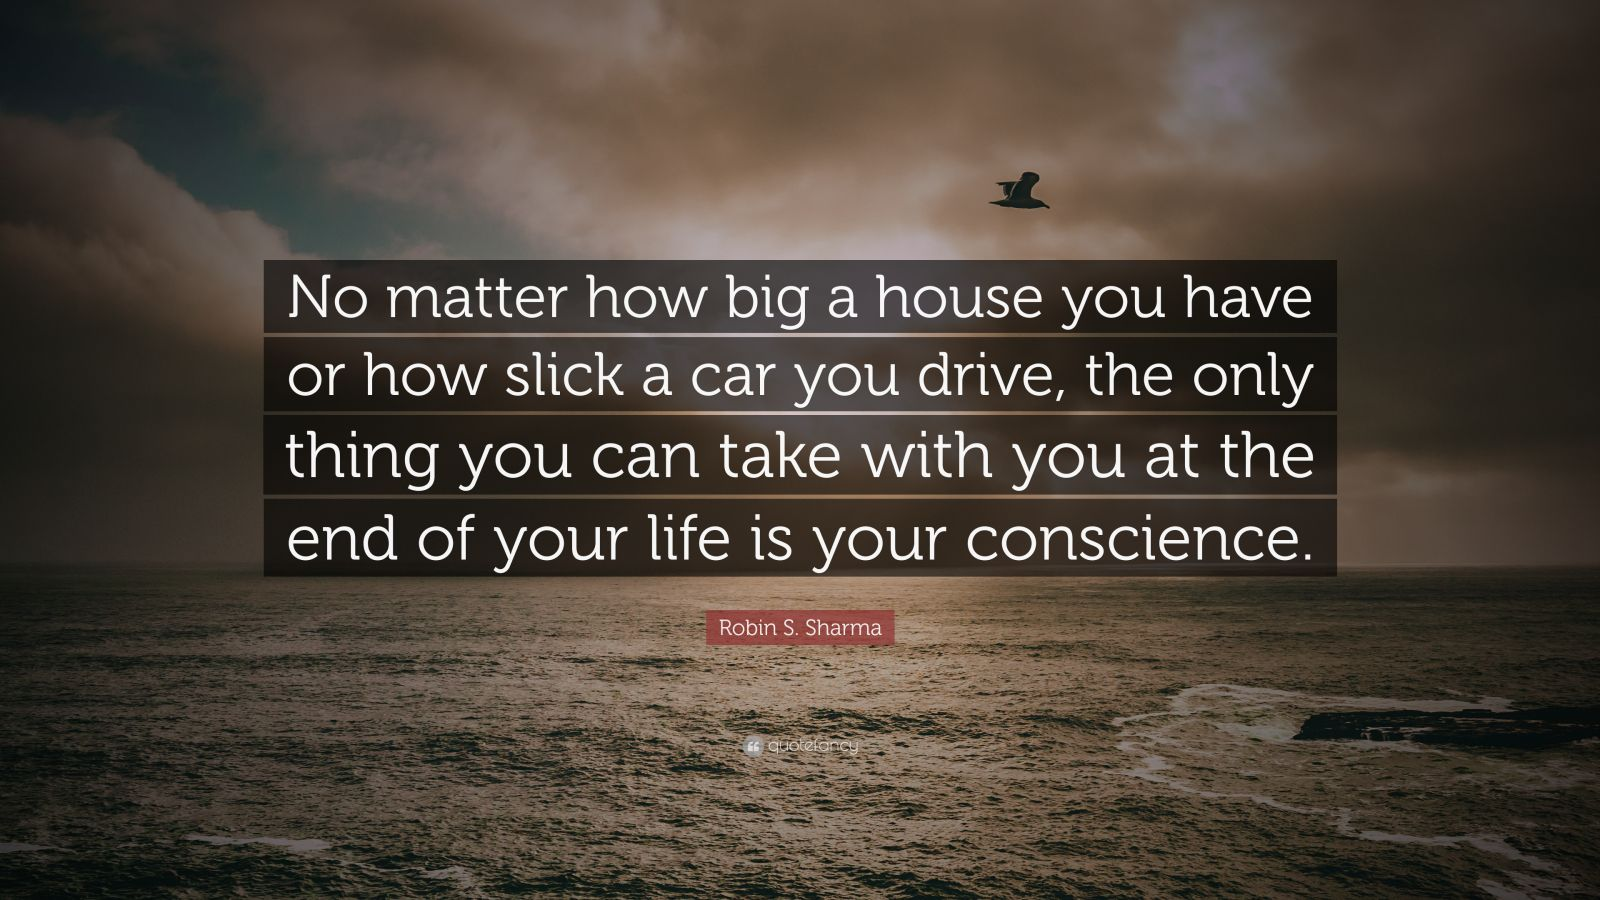 """Robin S. Sharma Quote: """"No matter how big a house you have or how slick a car you drive, the only thing you can take with you at the end of your life is your conscience."""""""